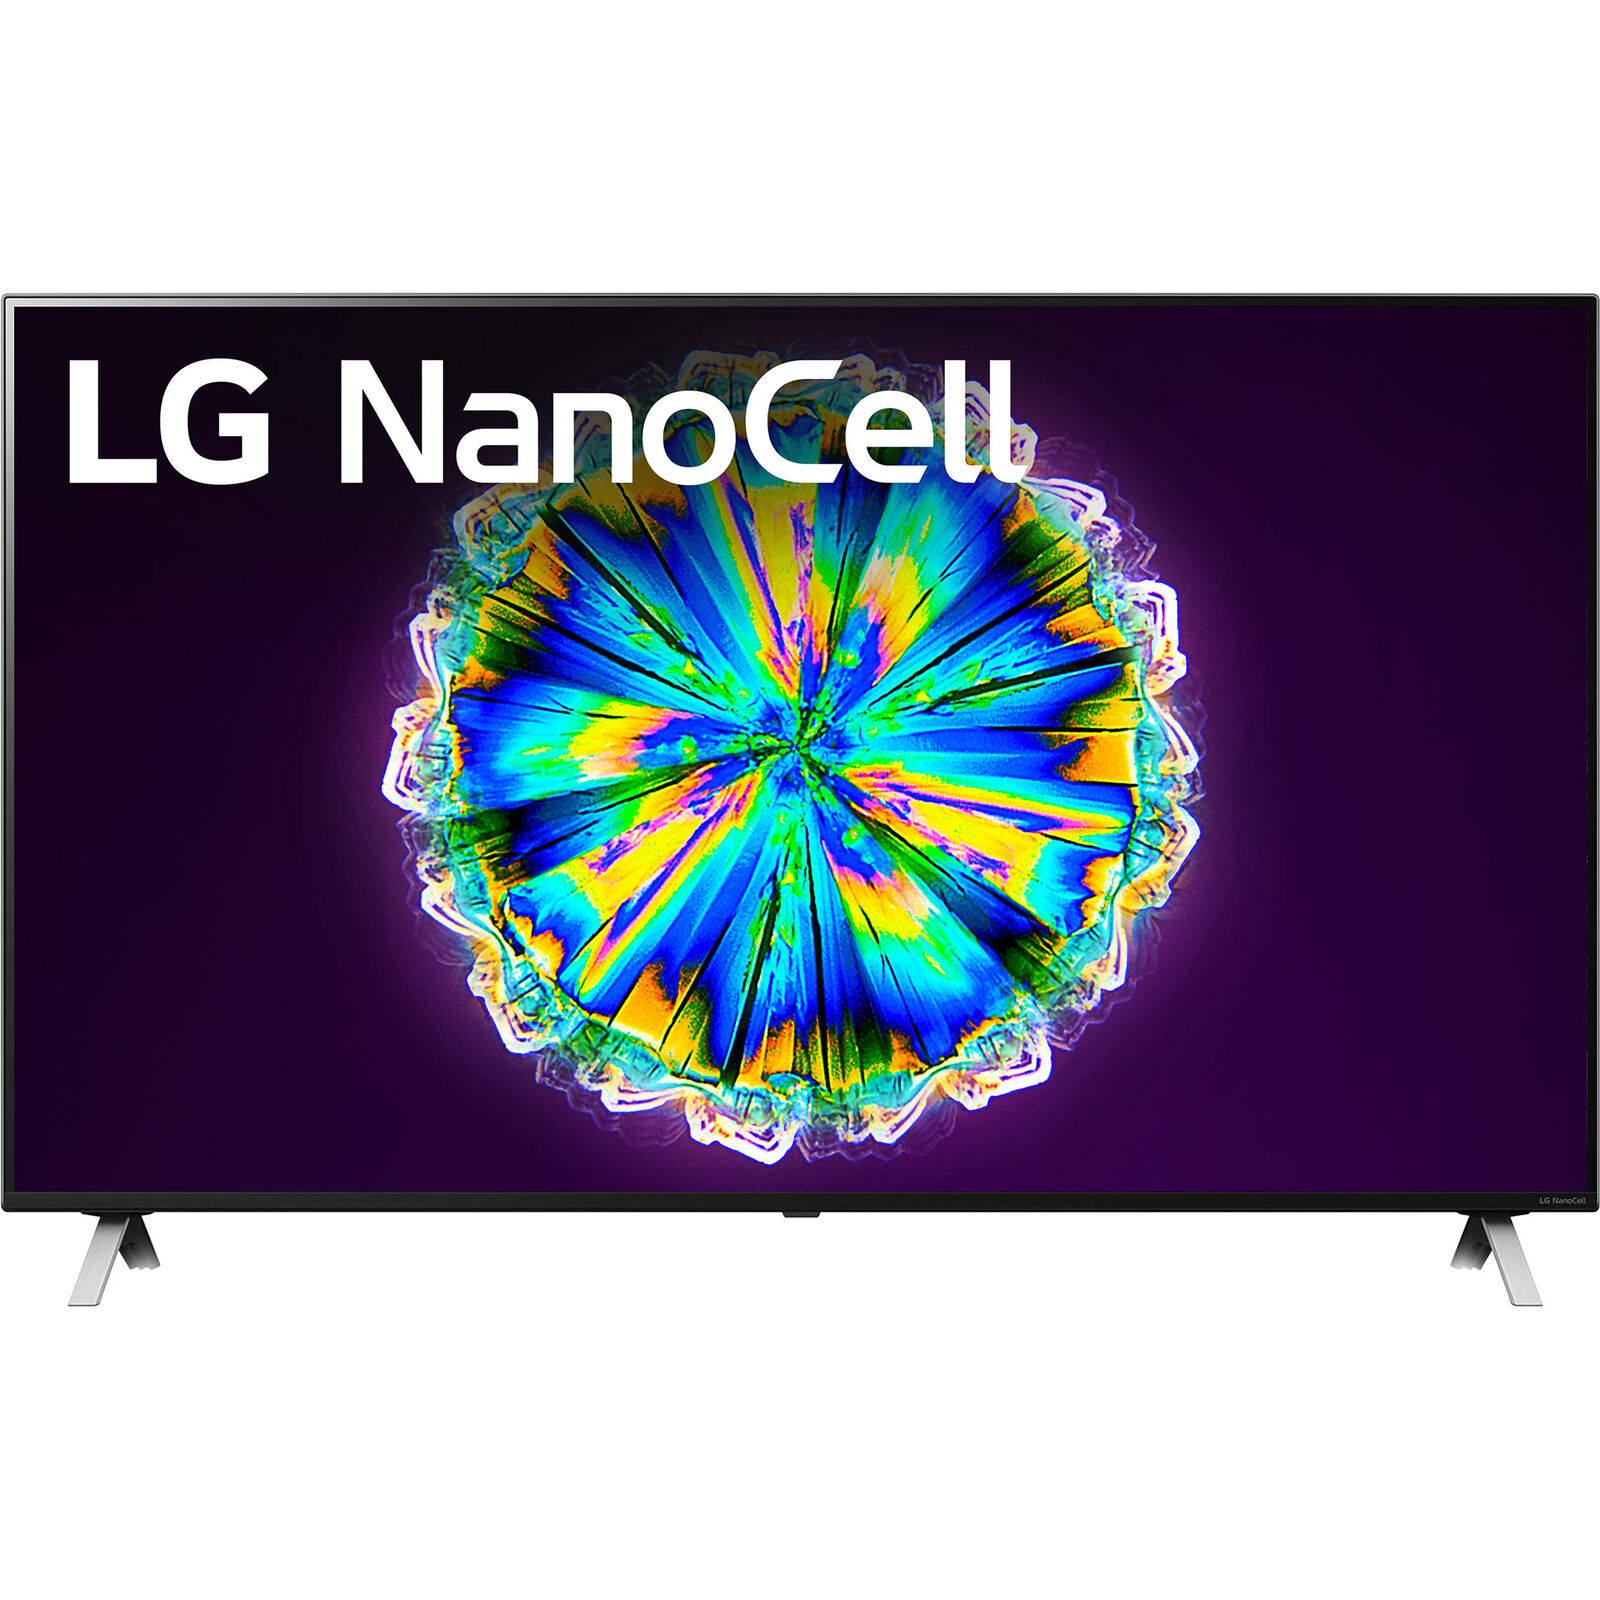 LG 75 NanoCell 85 Series 4K UHD HDR Smart TV - 2020 Model *75NANO85. Available Now for 1249.60